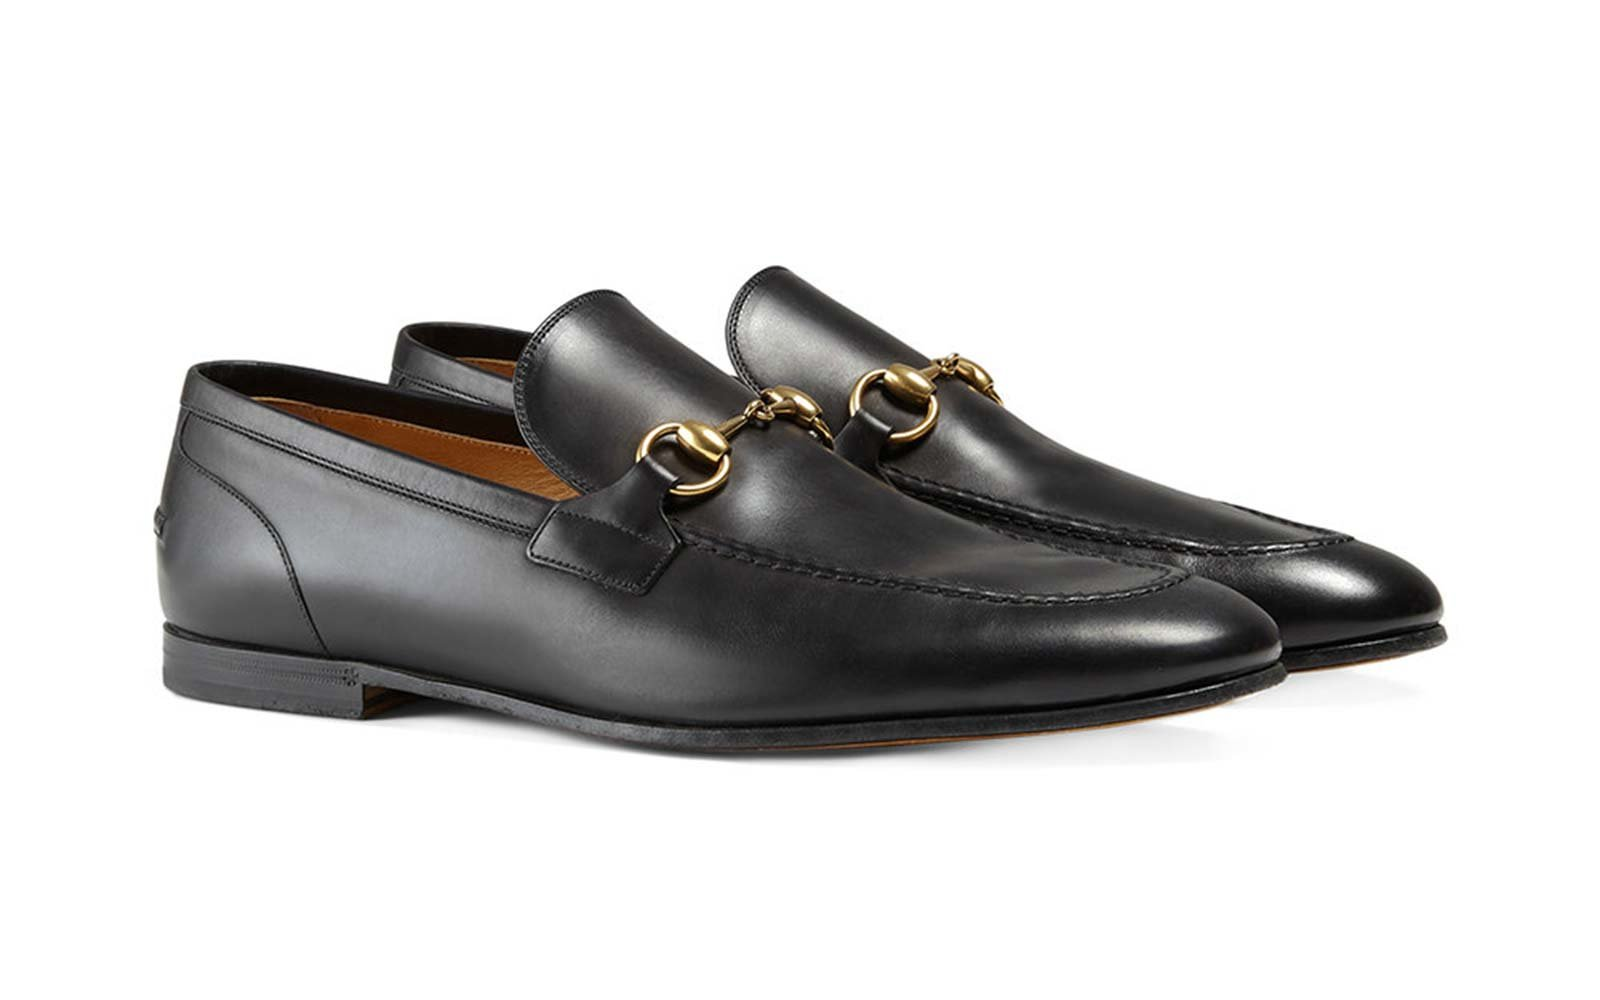 Loafers for Men, Black, Leather, 2017, 6 8 9 Gucci